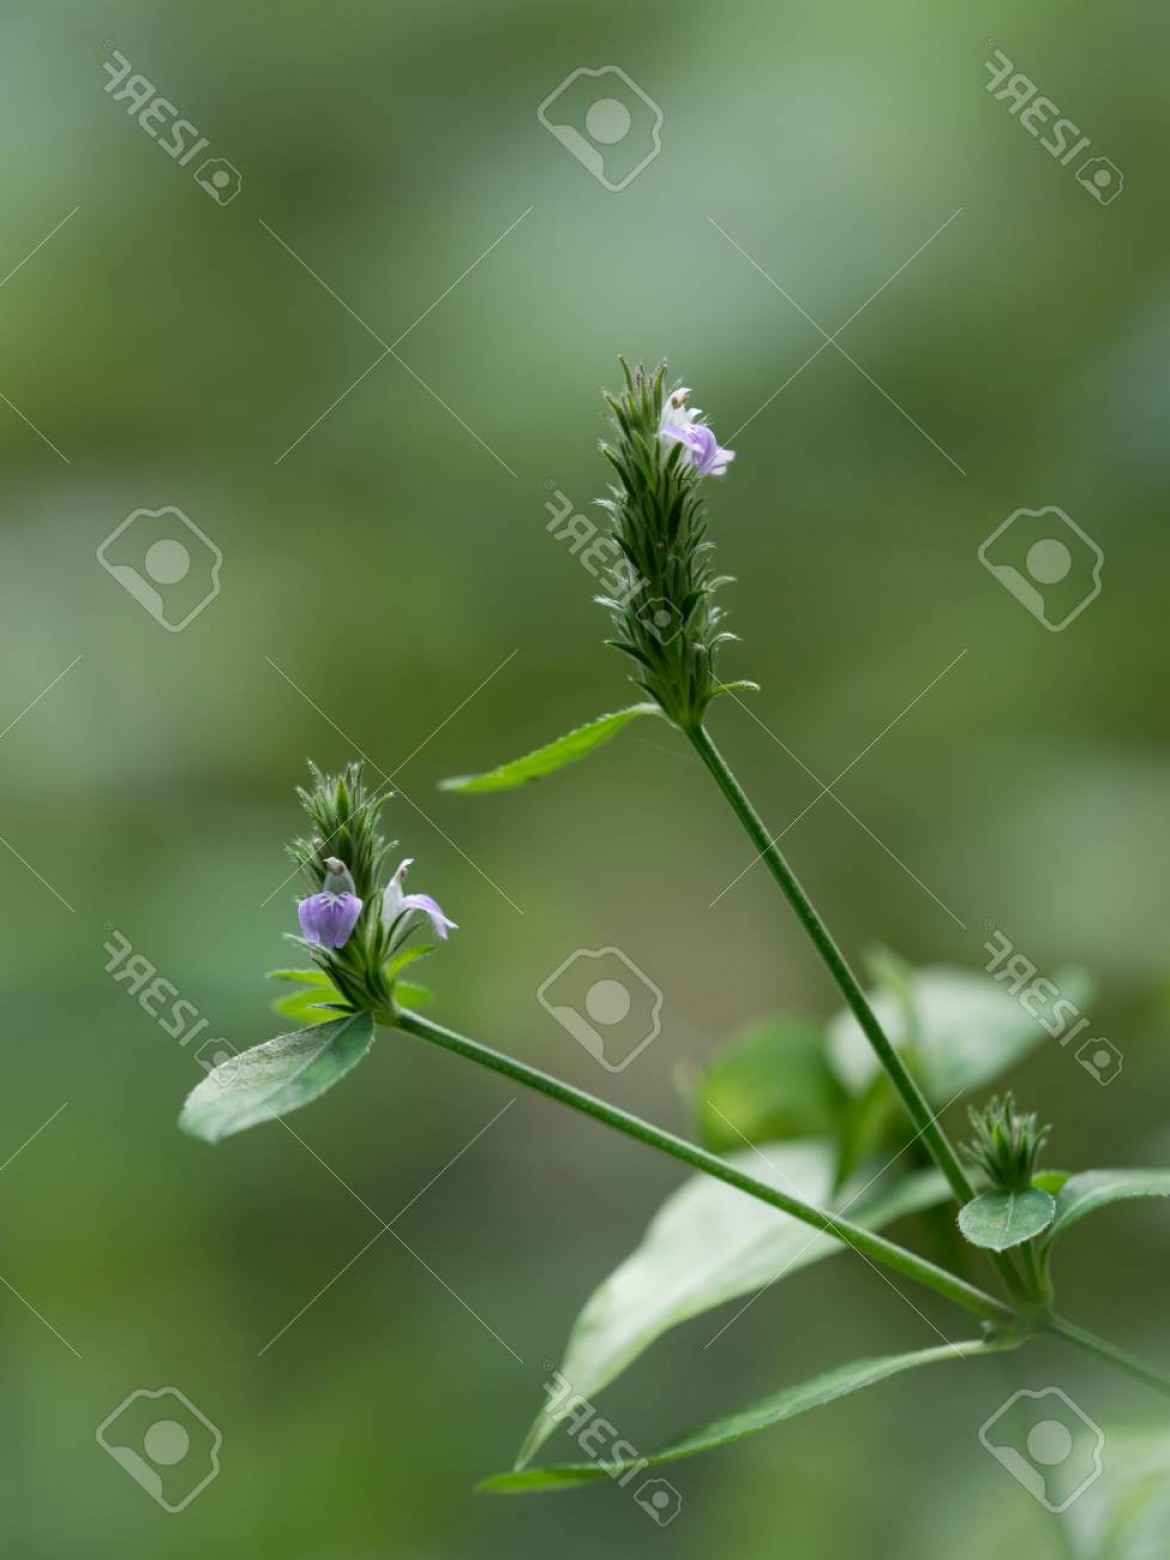 Vector Water Willow: Photovery Small Purple Weed Flower Water Willow